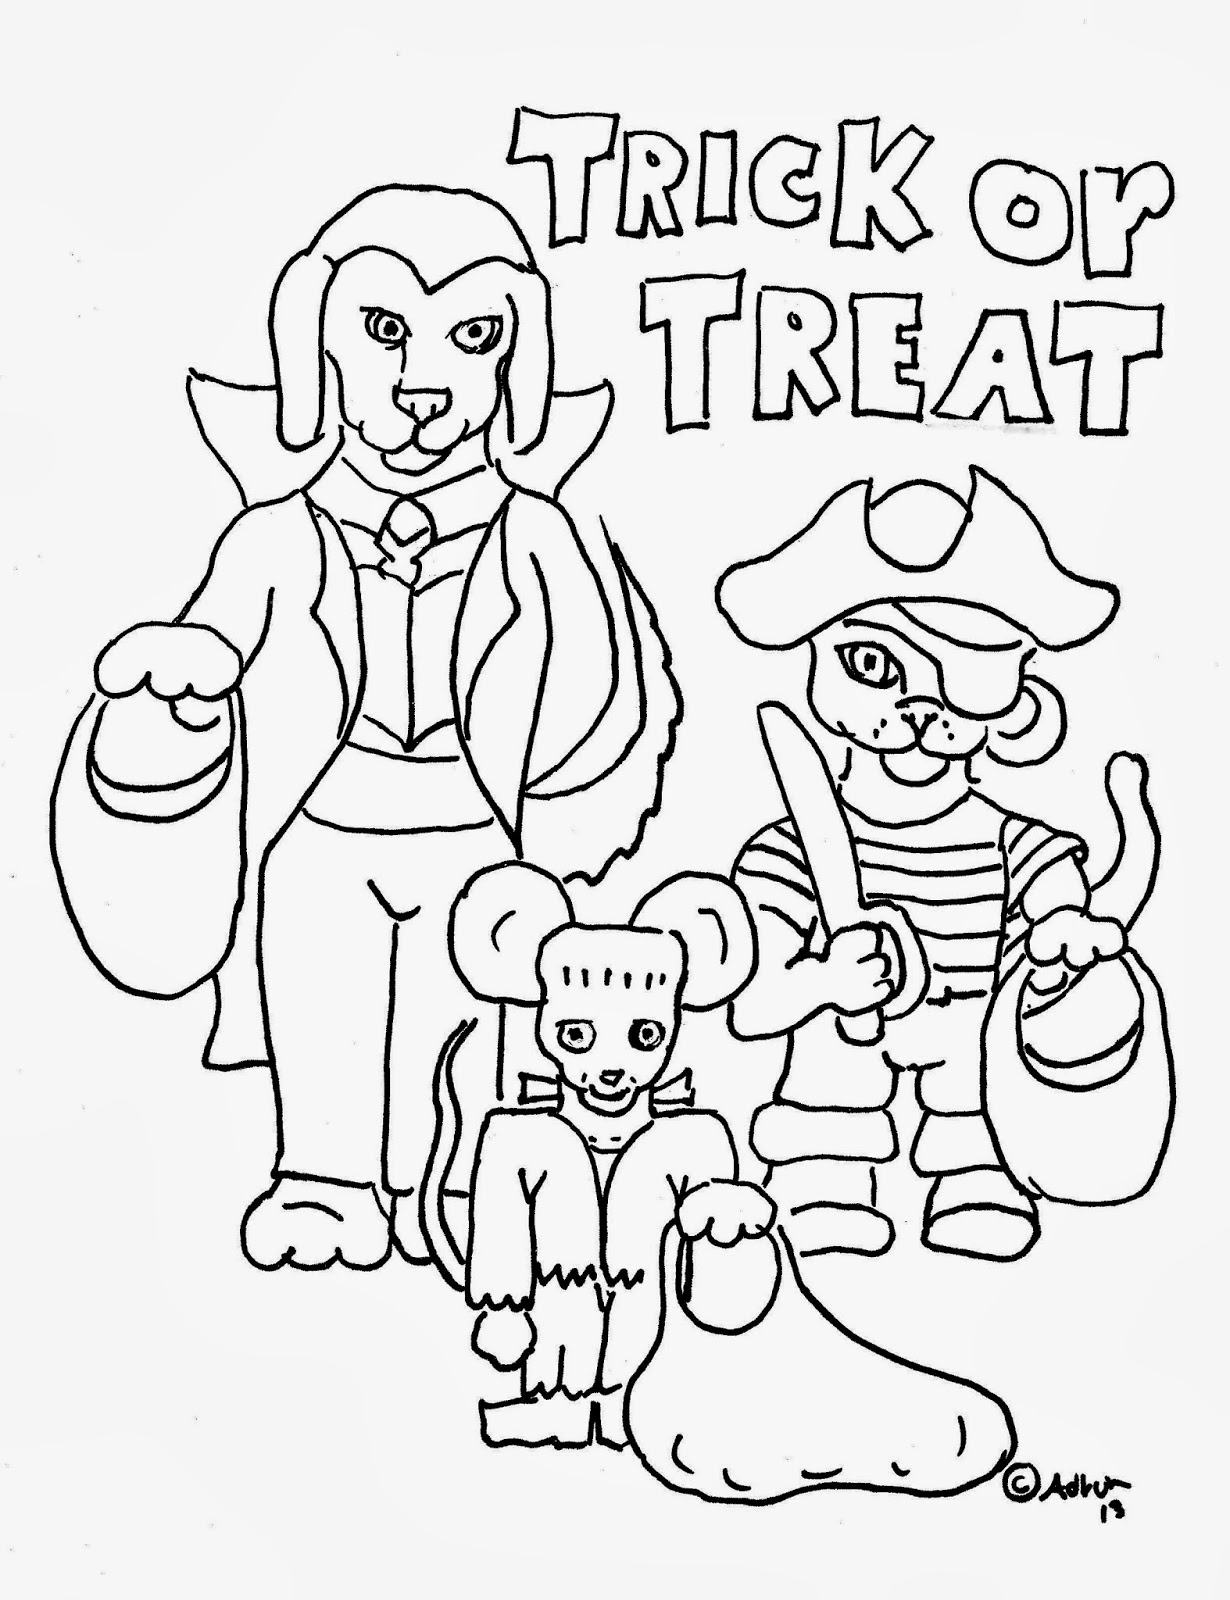 Trick or Treat Coloring Pages to Print For Kids